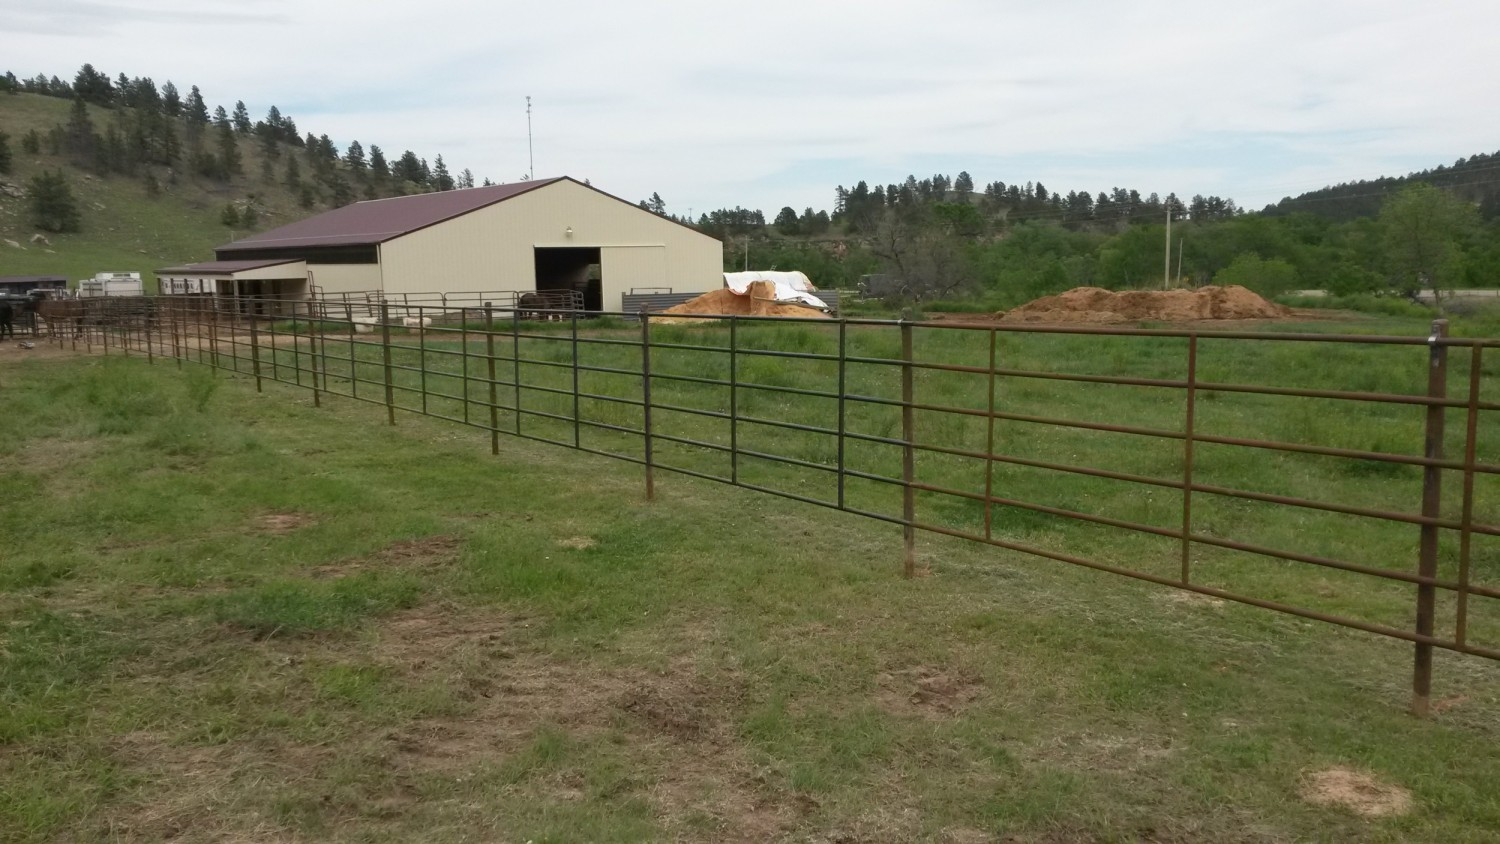 Bechen Fencing farm and ranch fencing